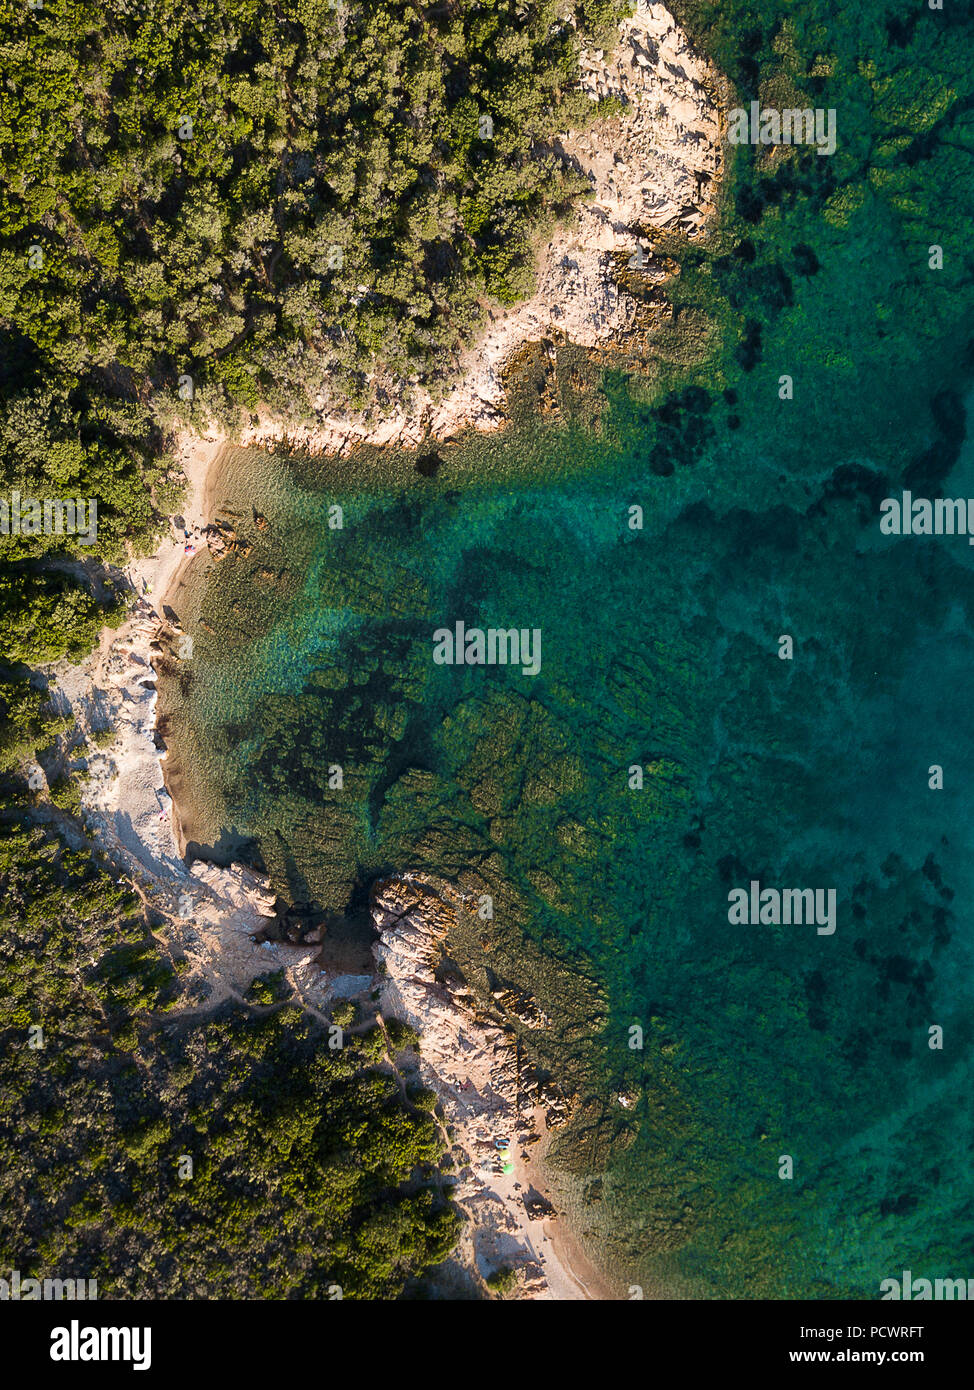 View from above, aerial view of a rocky coast bathed by an emerald and transparent Mediterranean sea, Costa Smeralda, Sardinia, Italy - Stock Image